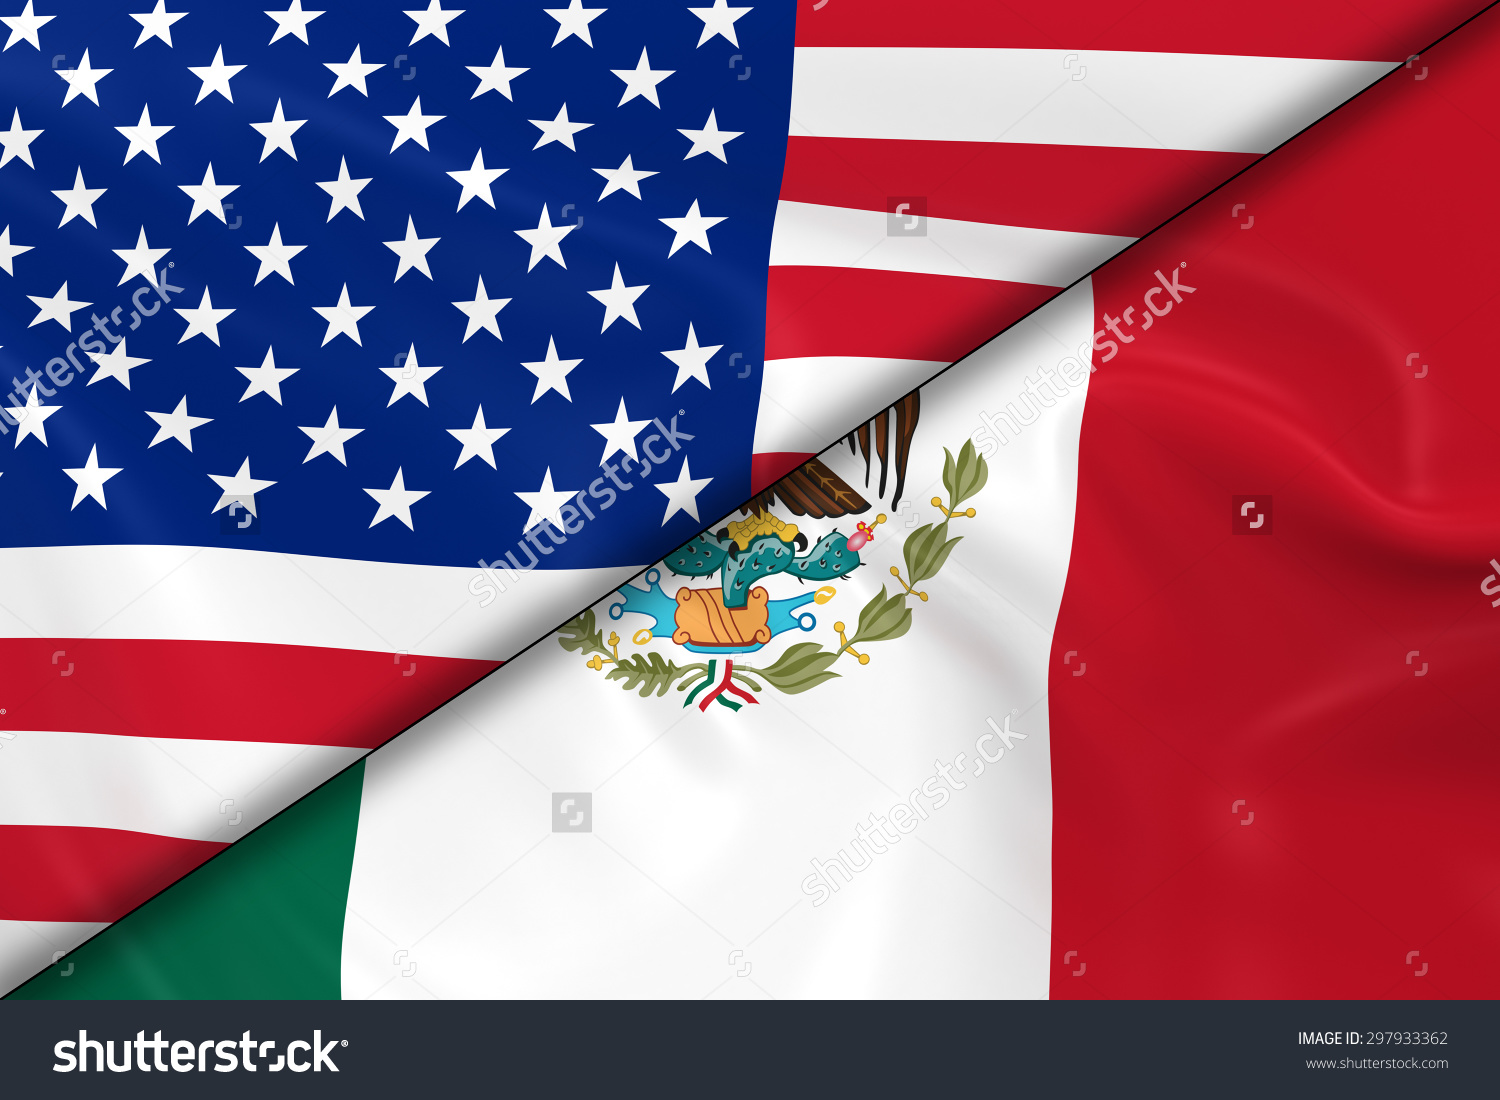 United states mexico flag clipart picture freeuse library Flags United States America Mexico Divided Stock Illustration ... picture freeuse library